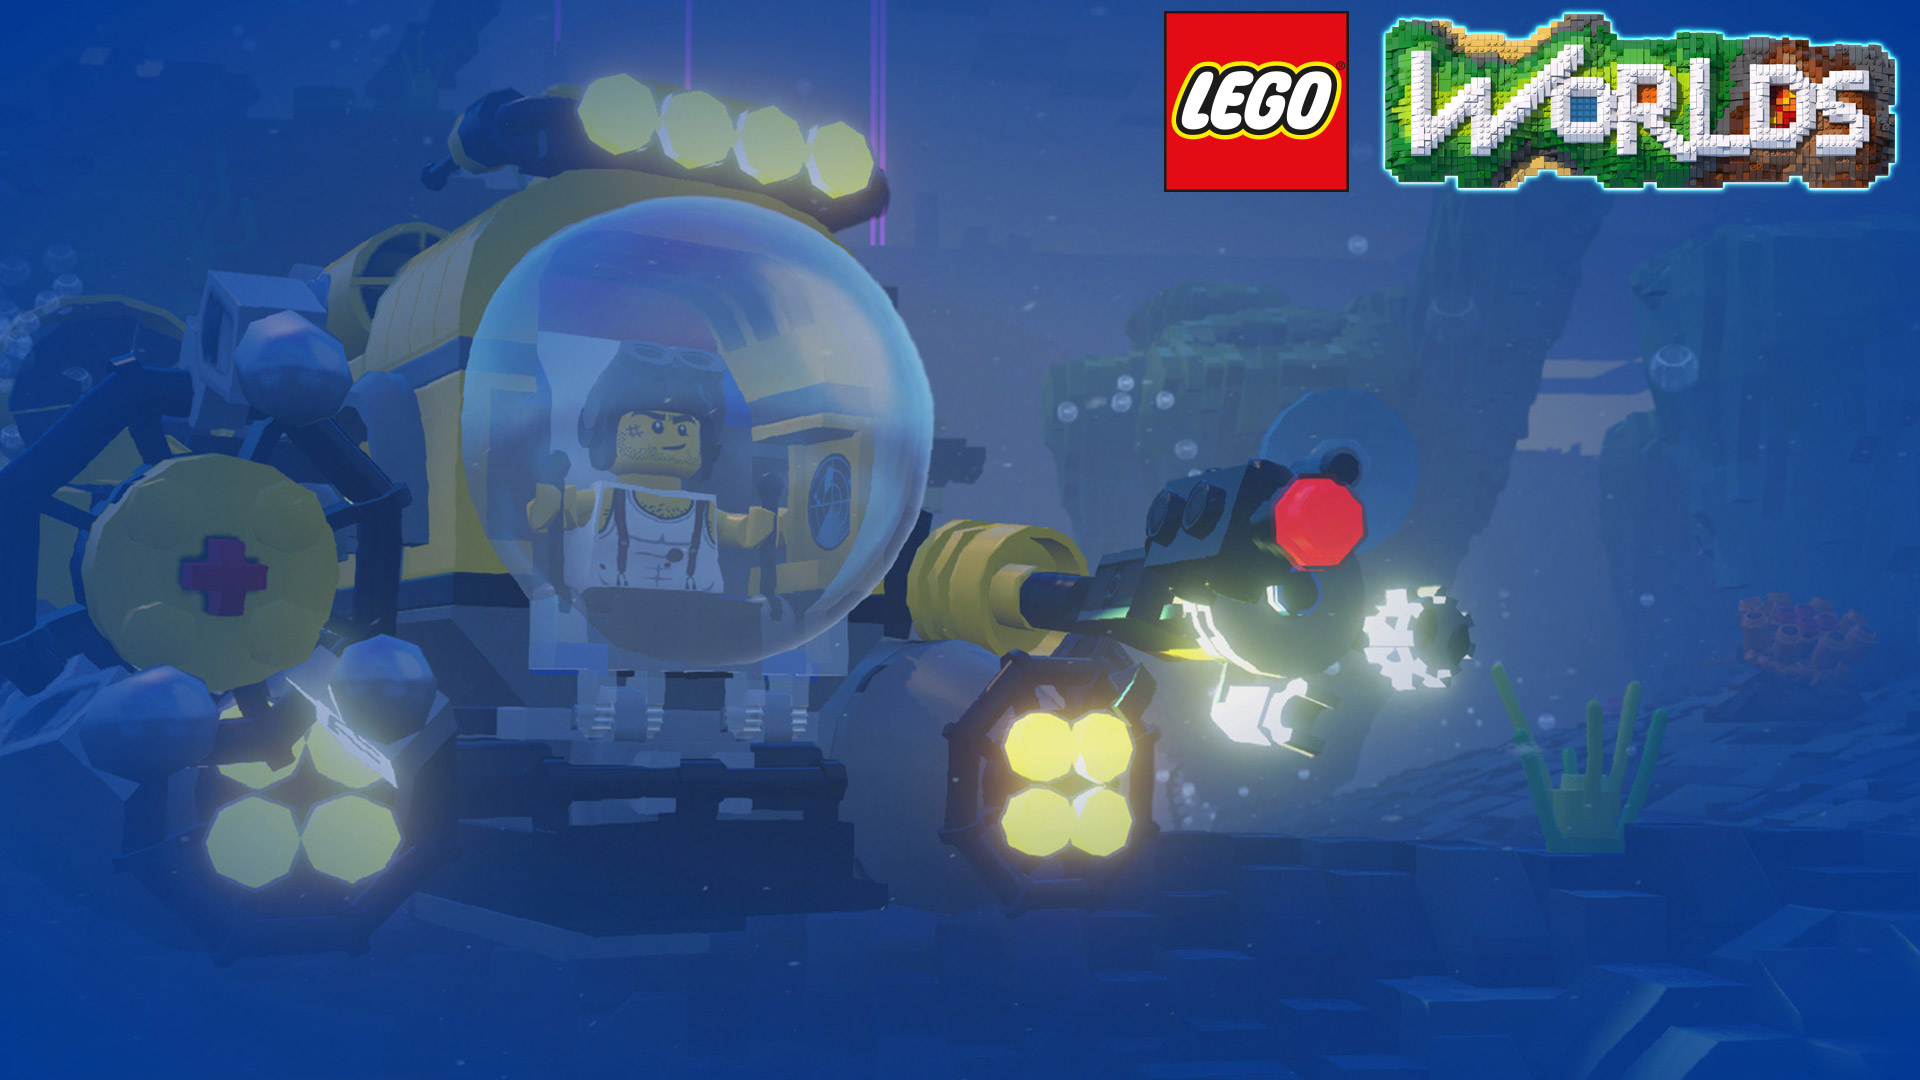 Lego Worlds Wallpaper in 1920x1080